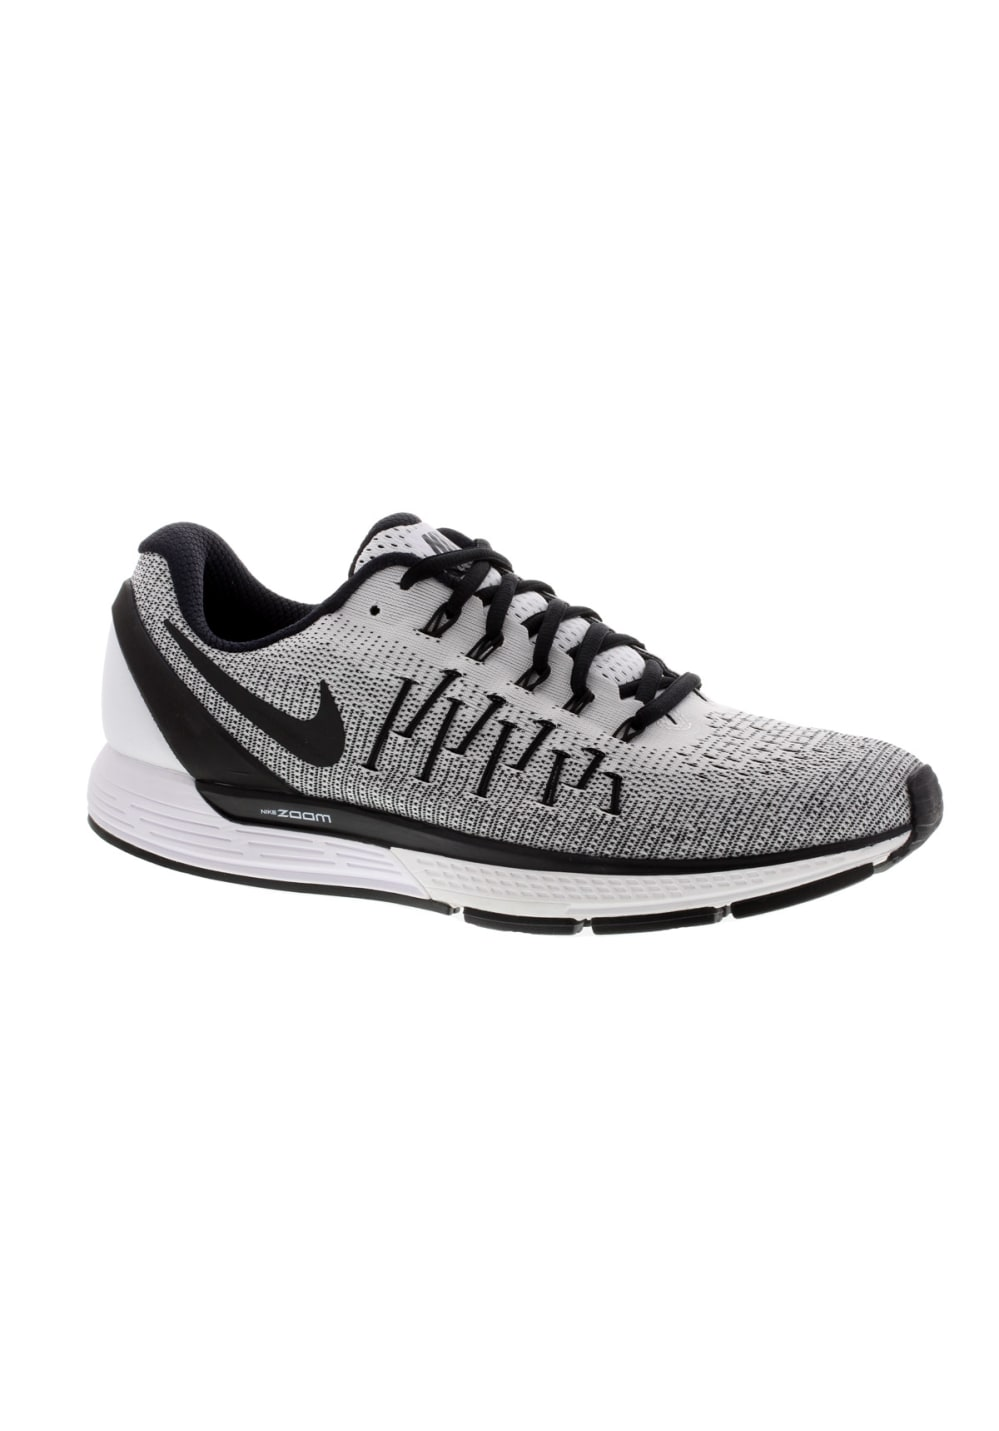 bcb5e39700a5 nike-air-zoom-odyssey-2-running-shoes-women-grey-pid-000000000010118569.jpg